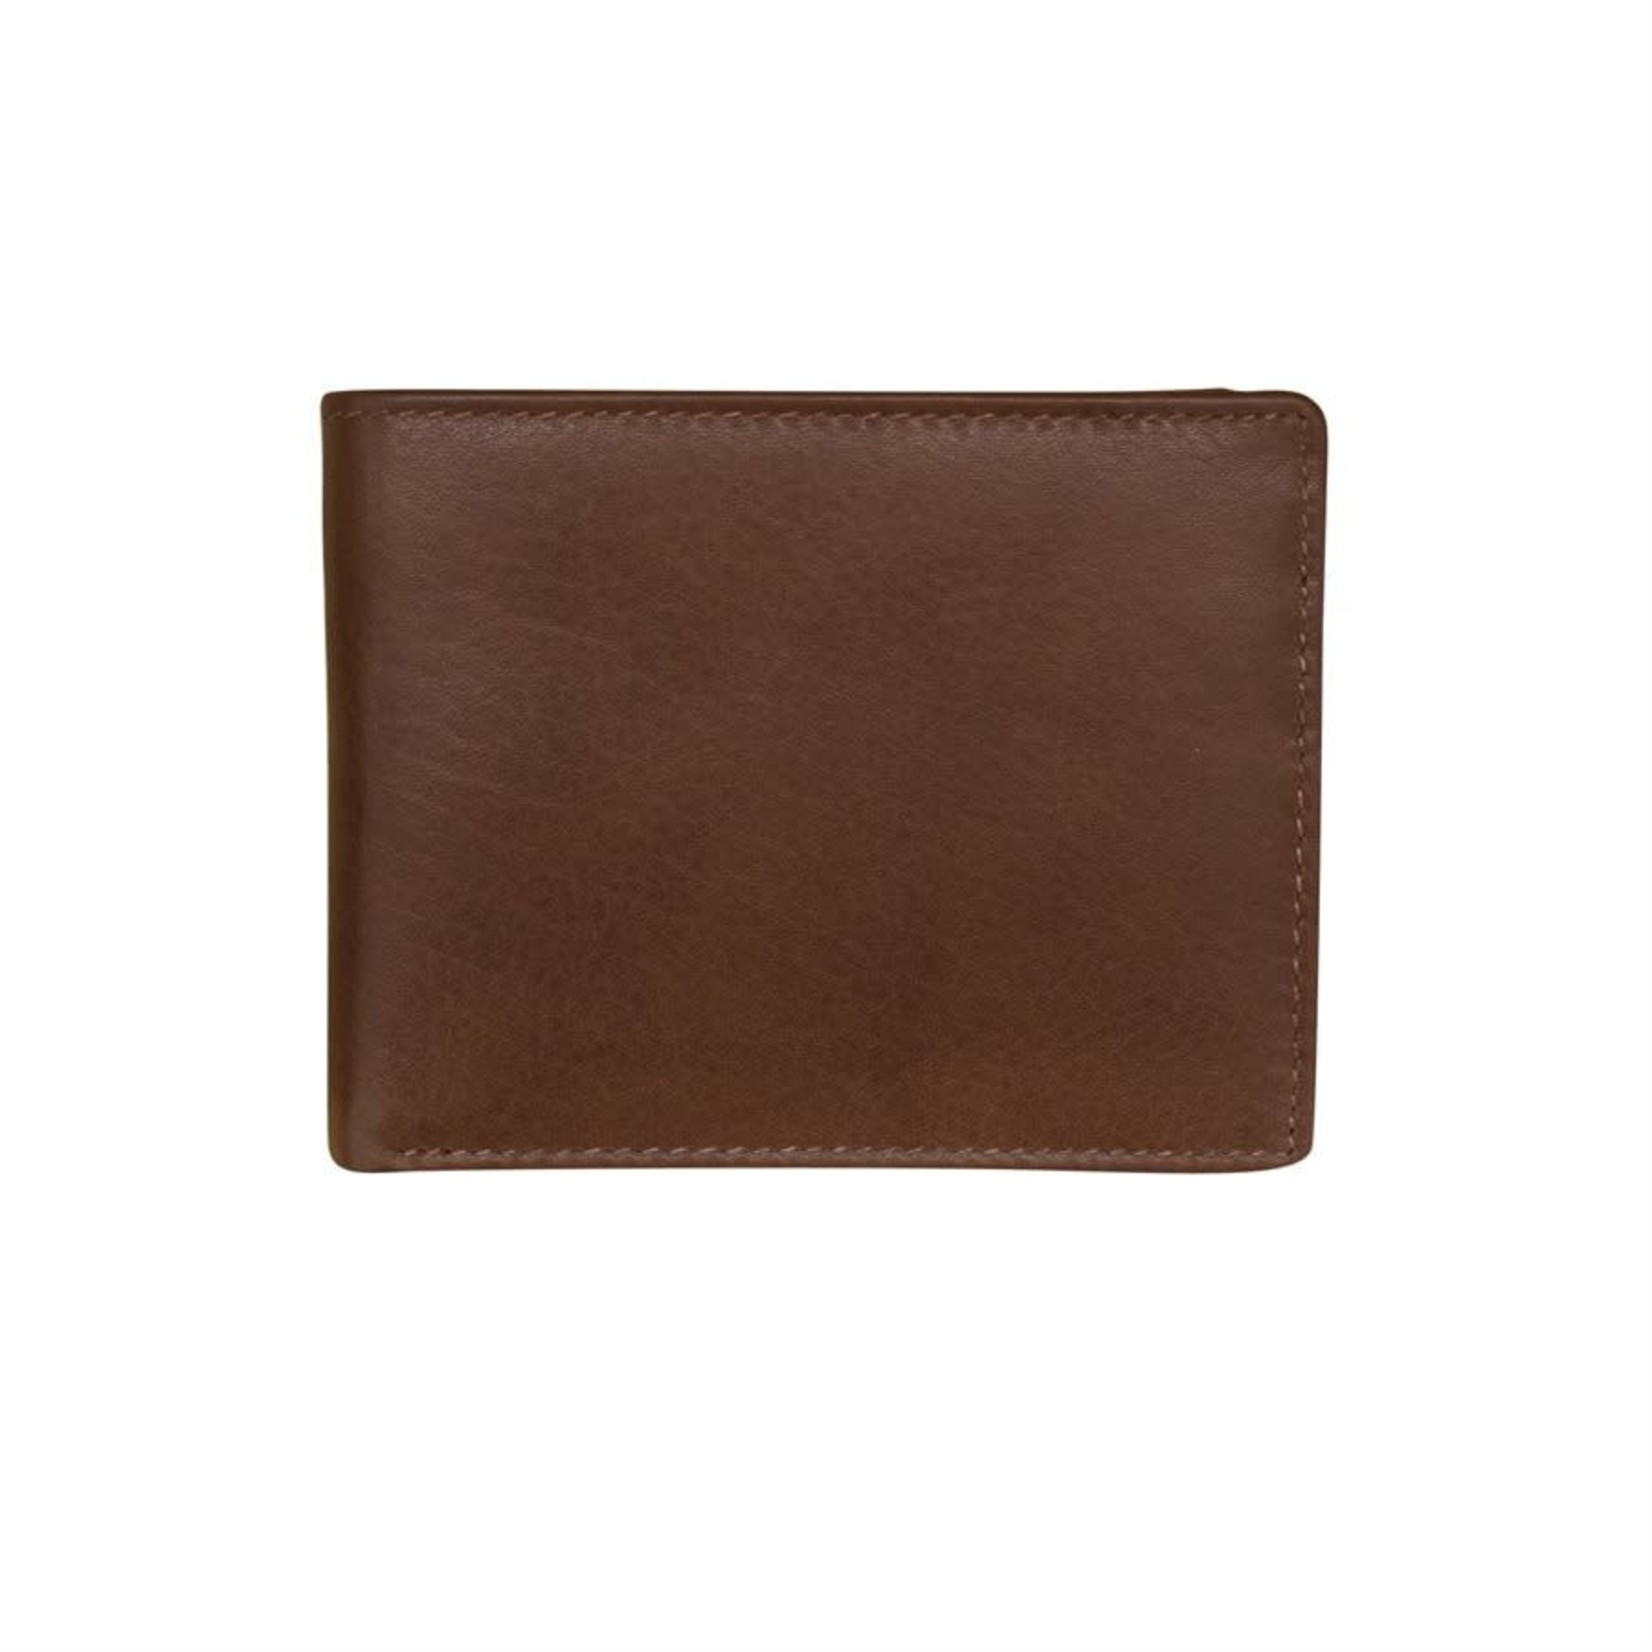 Leather Handbags and Accessories 7751 Toffee - RFID BiFold Wallet